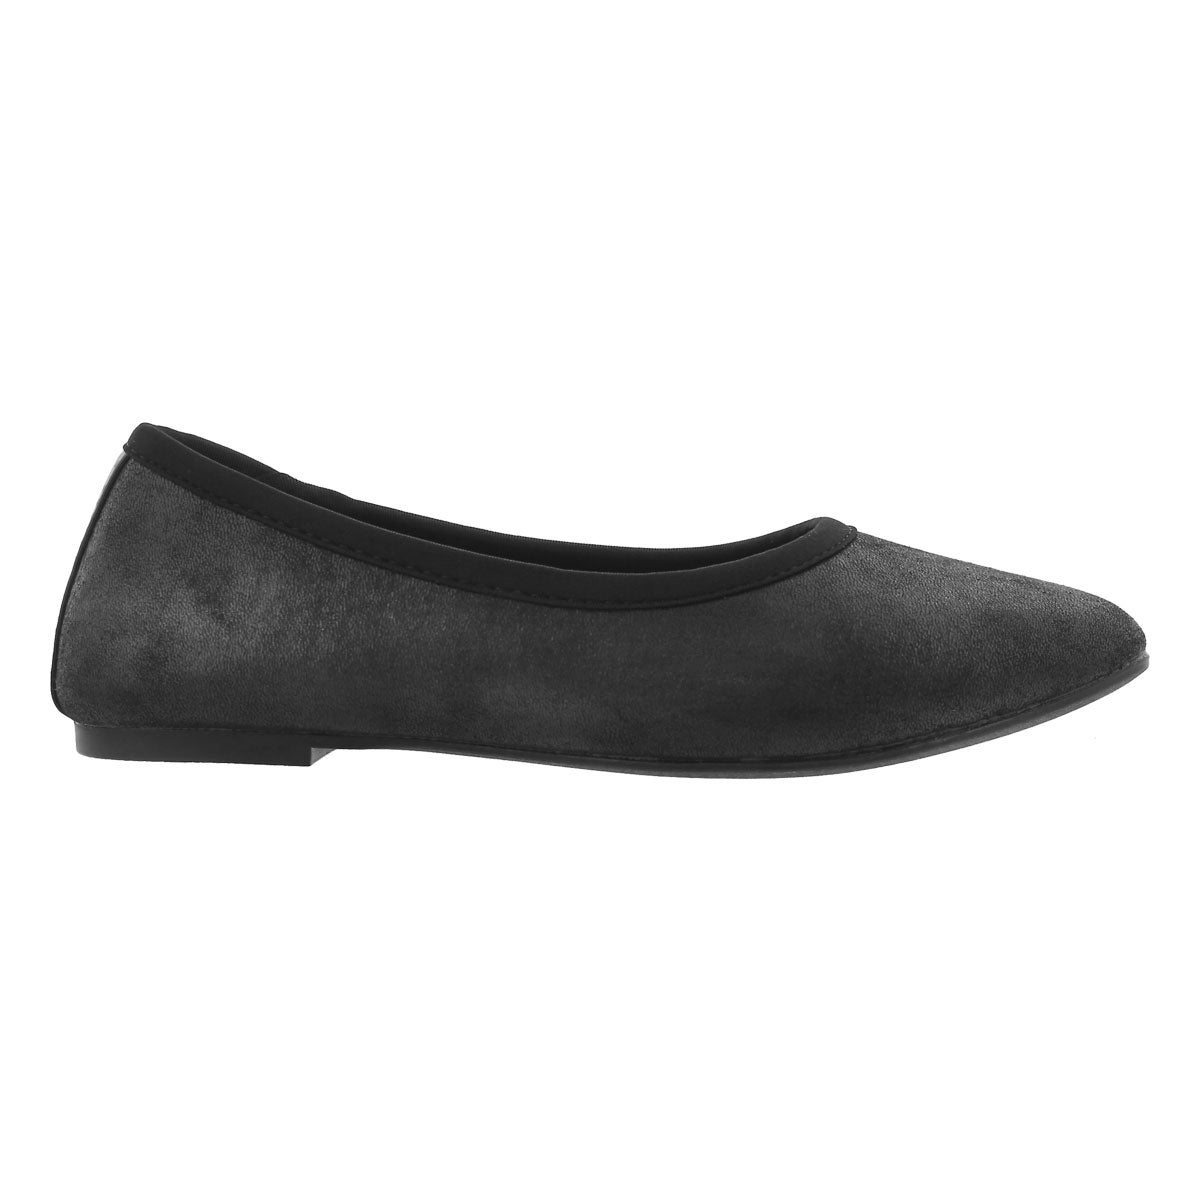 Lds Cleo Sincere black casual flat-wide